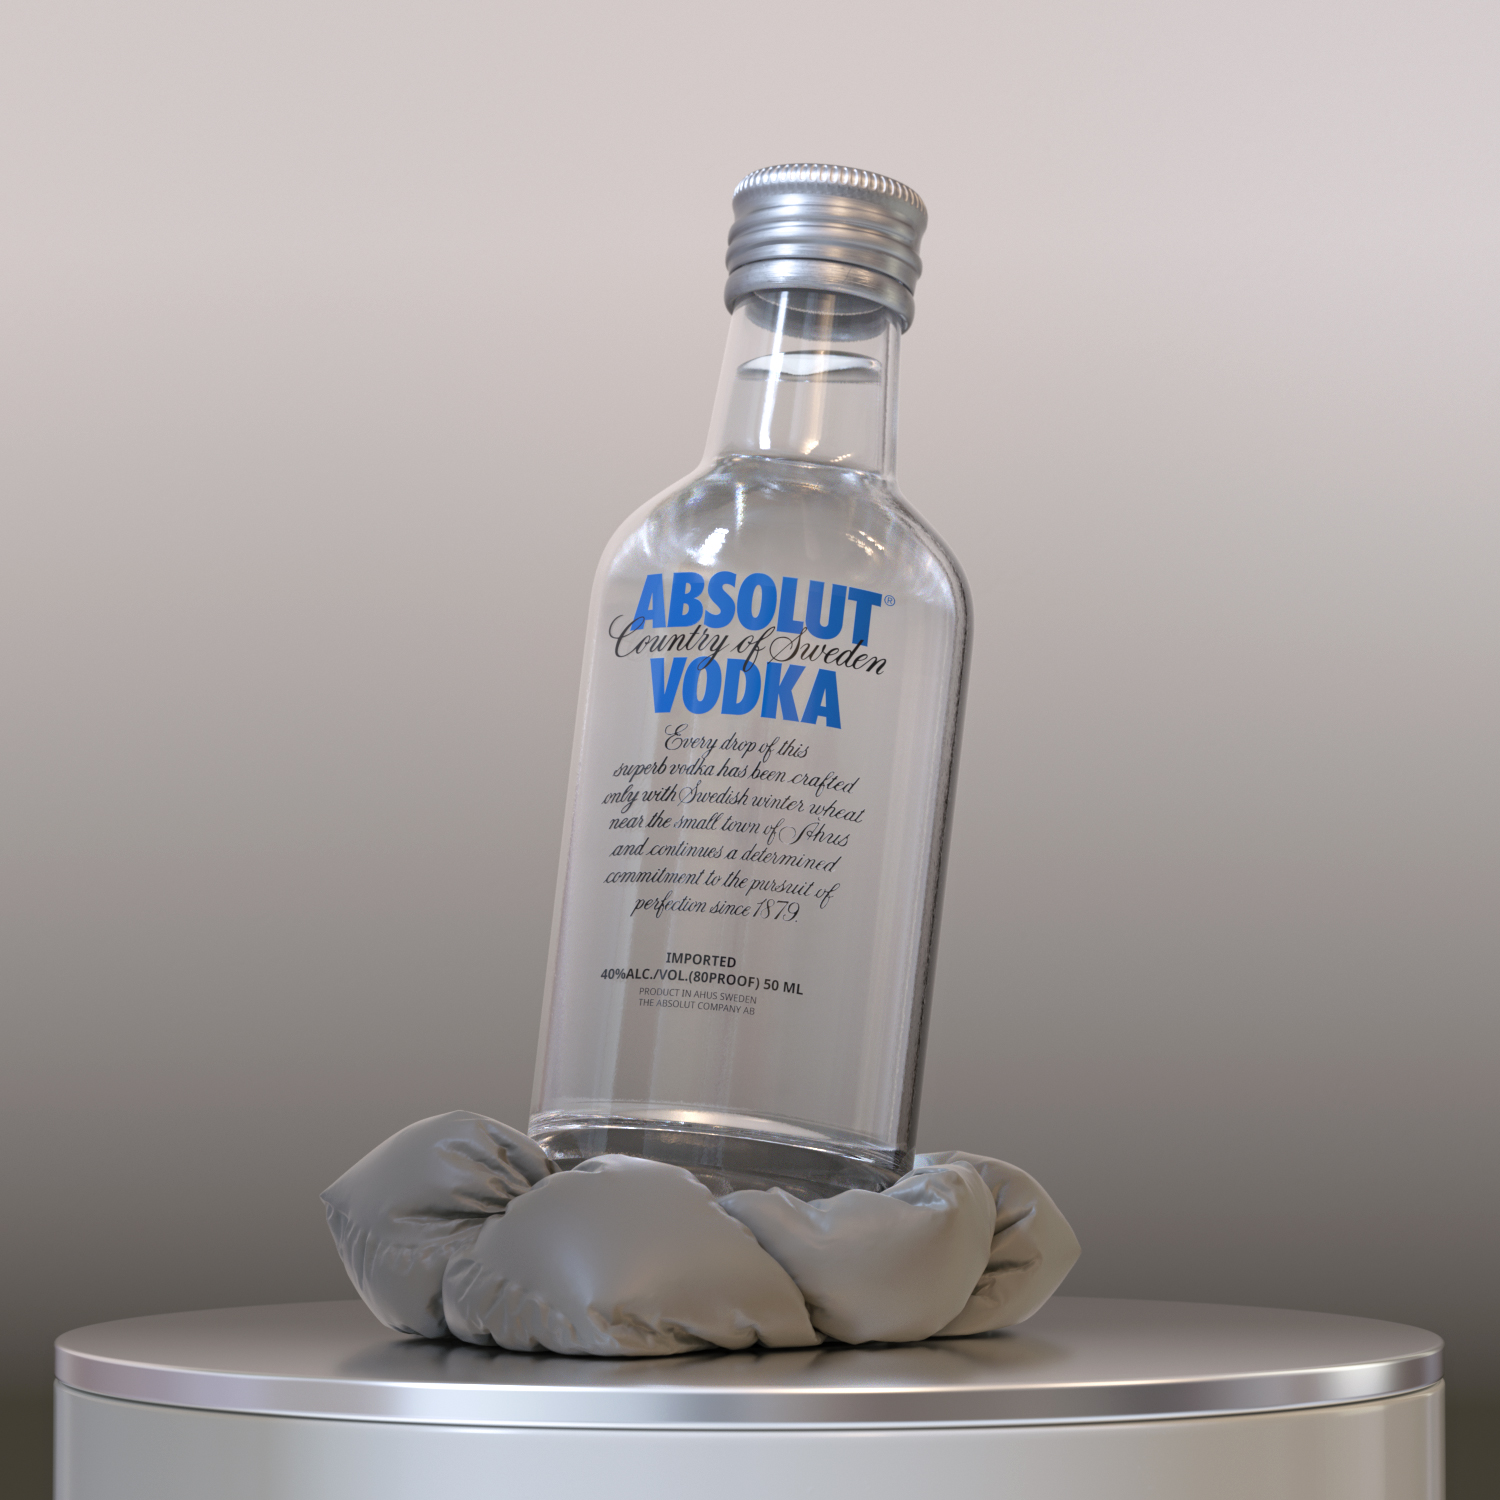 Photorealistic Product Rendering - Product 3D image. Mini bottle of alcoholic drink.